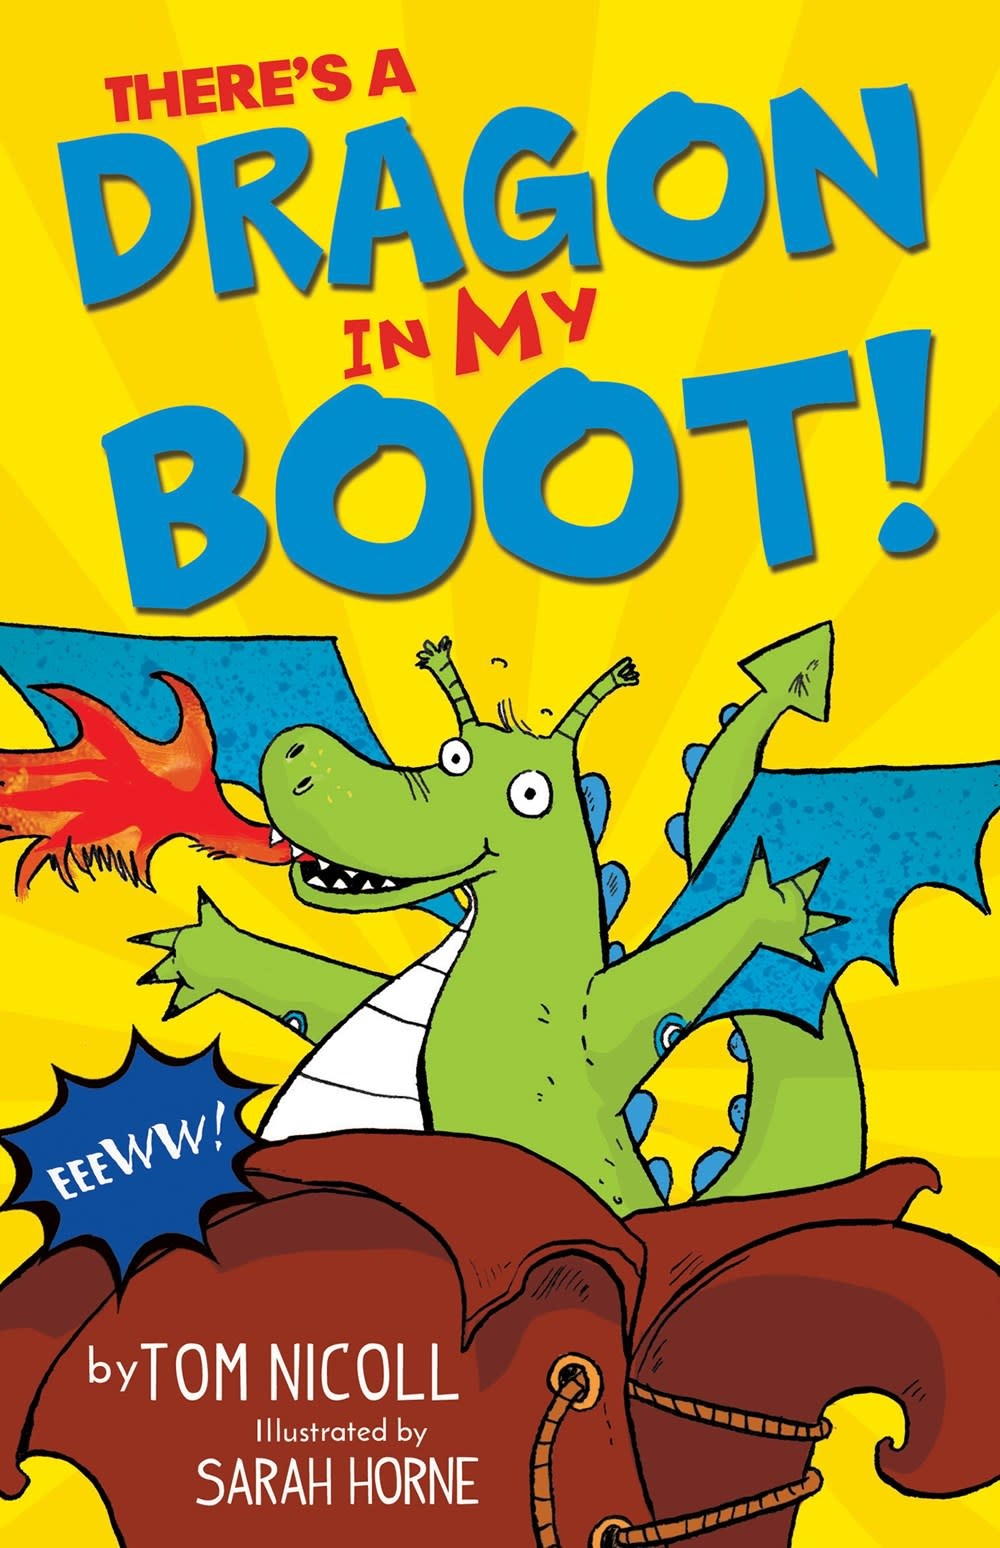 Tiger Tales. There's a Dragon: In my Boot